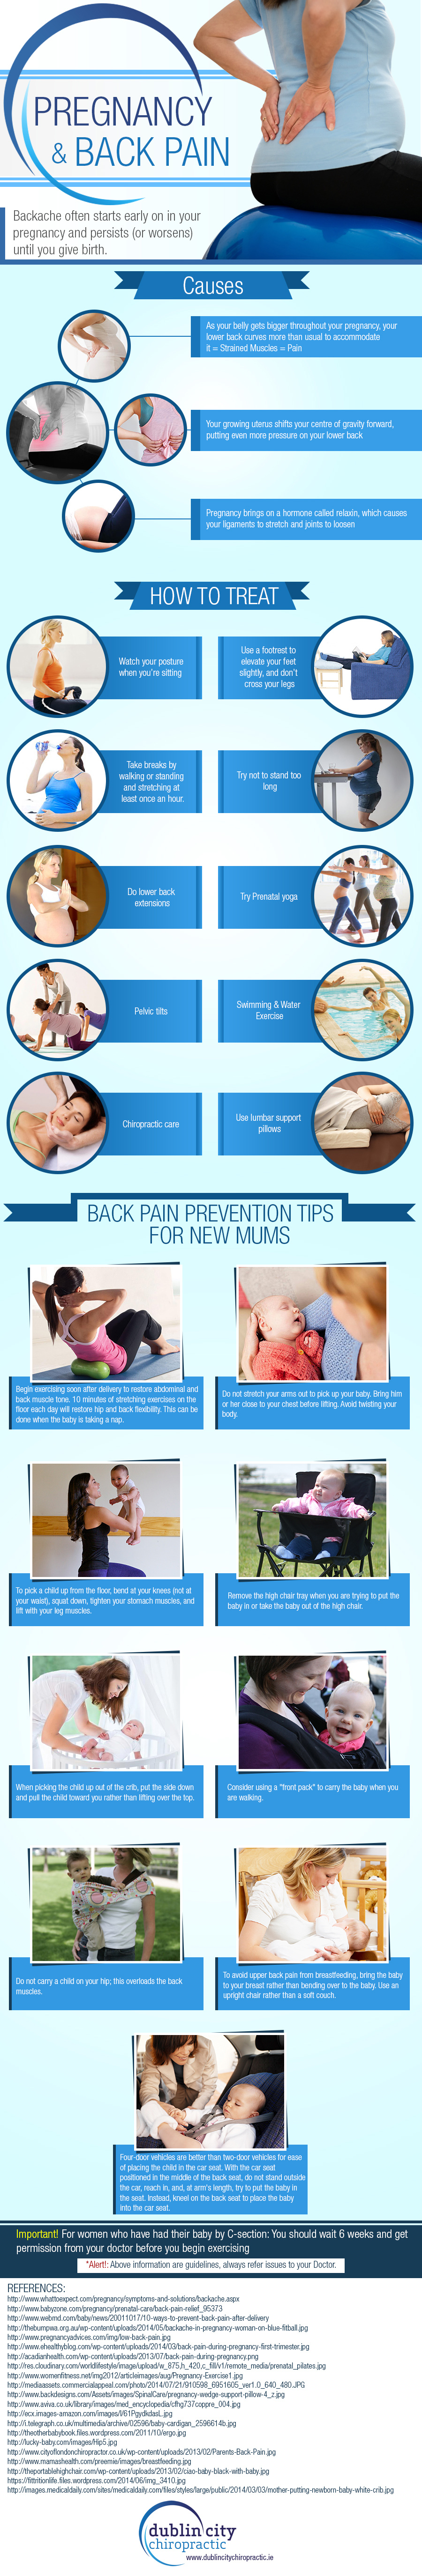 pregnancy and back pain